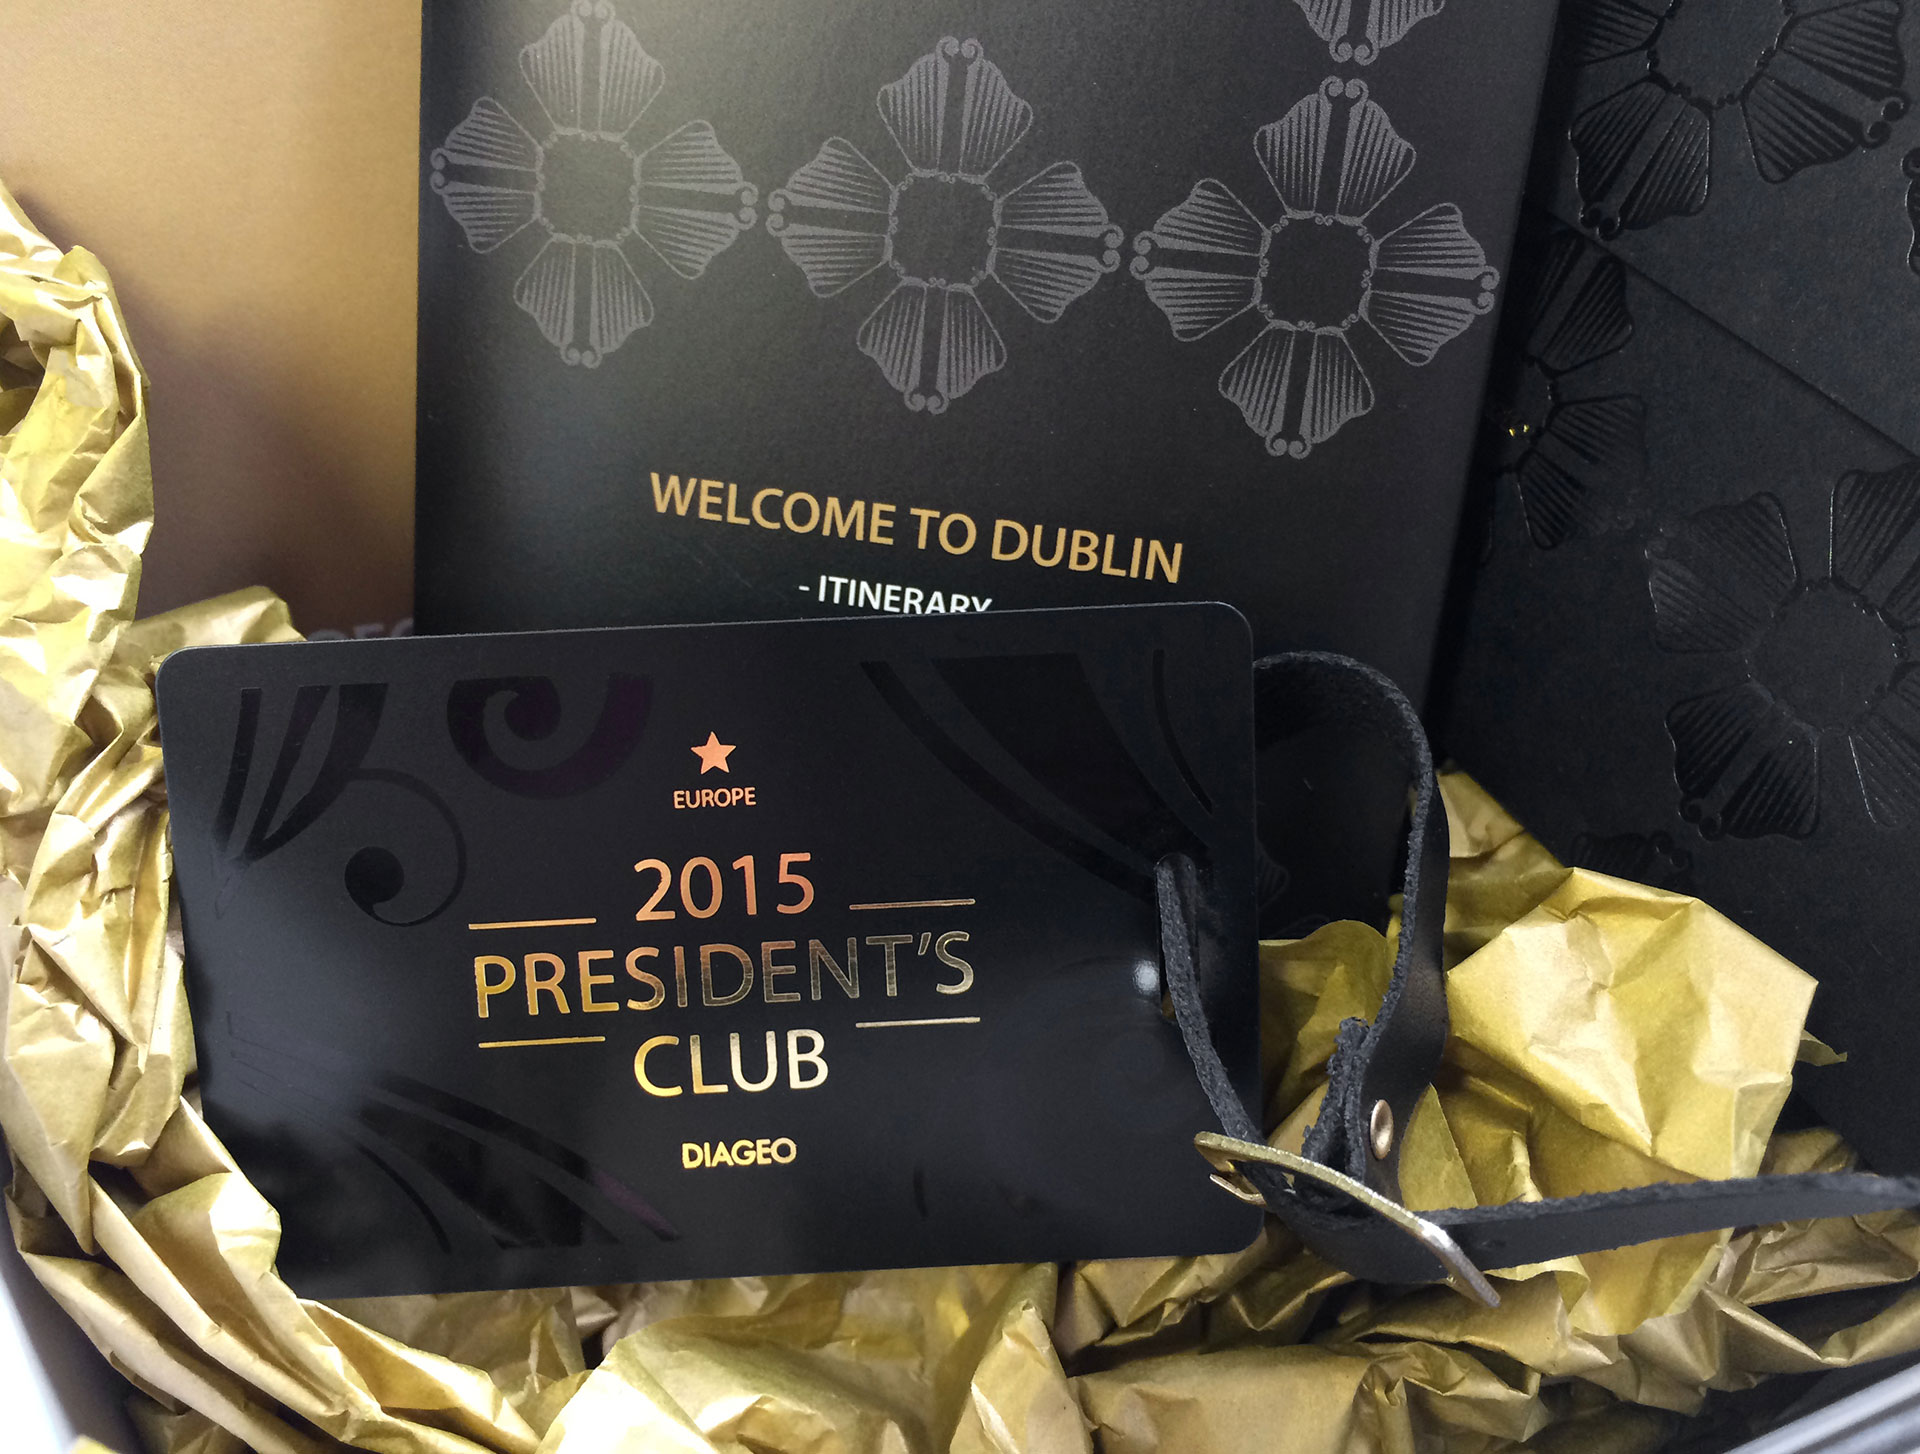 Diageo President's Club Collateral